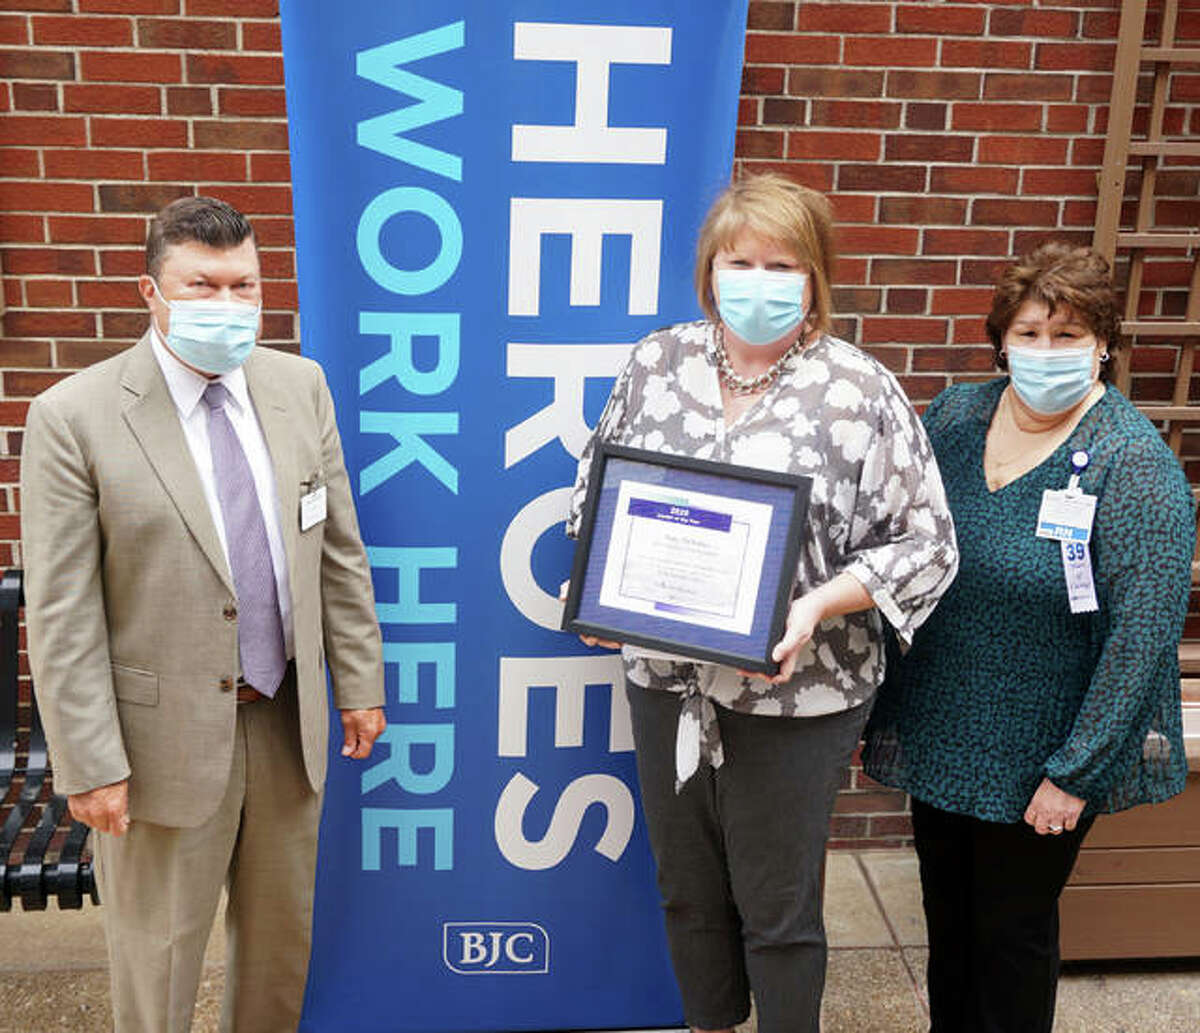 Amy Schuler, center, receives the Leadership Award from AMH President Dave Braasch and Debbie Turpin, chief nursing officer.